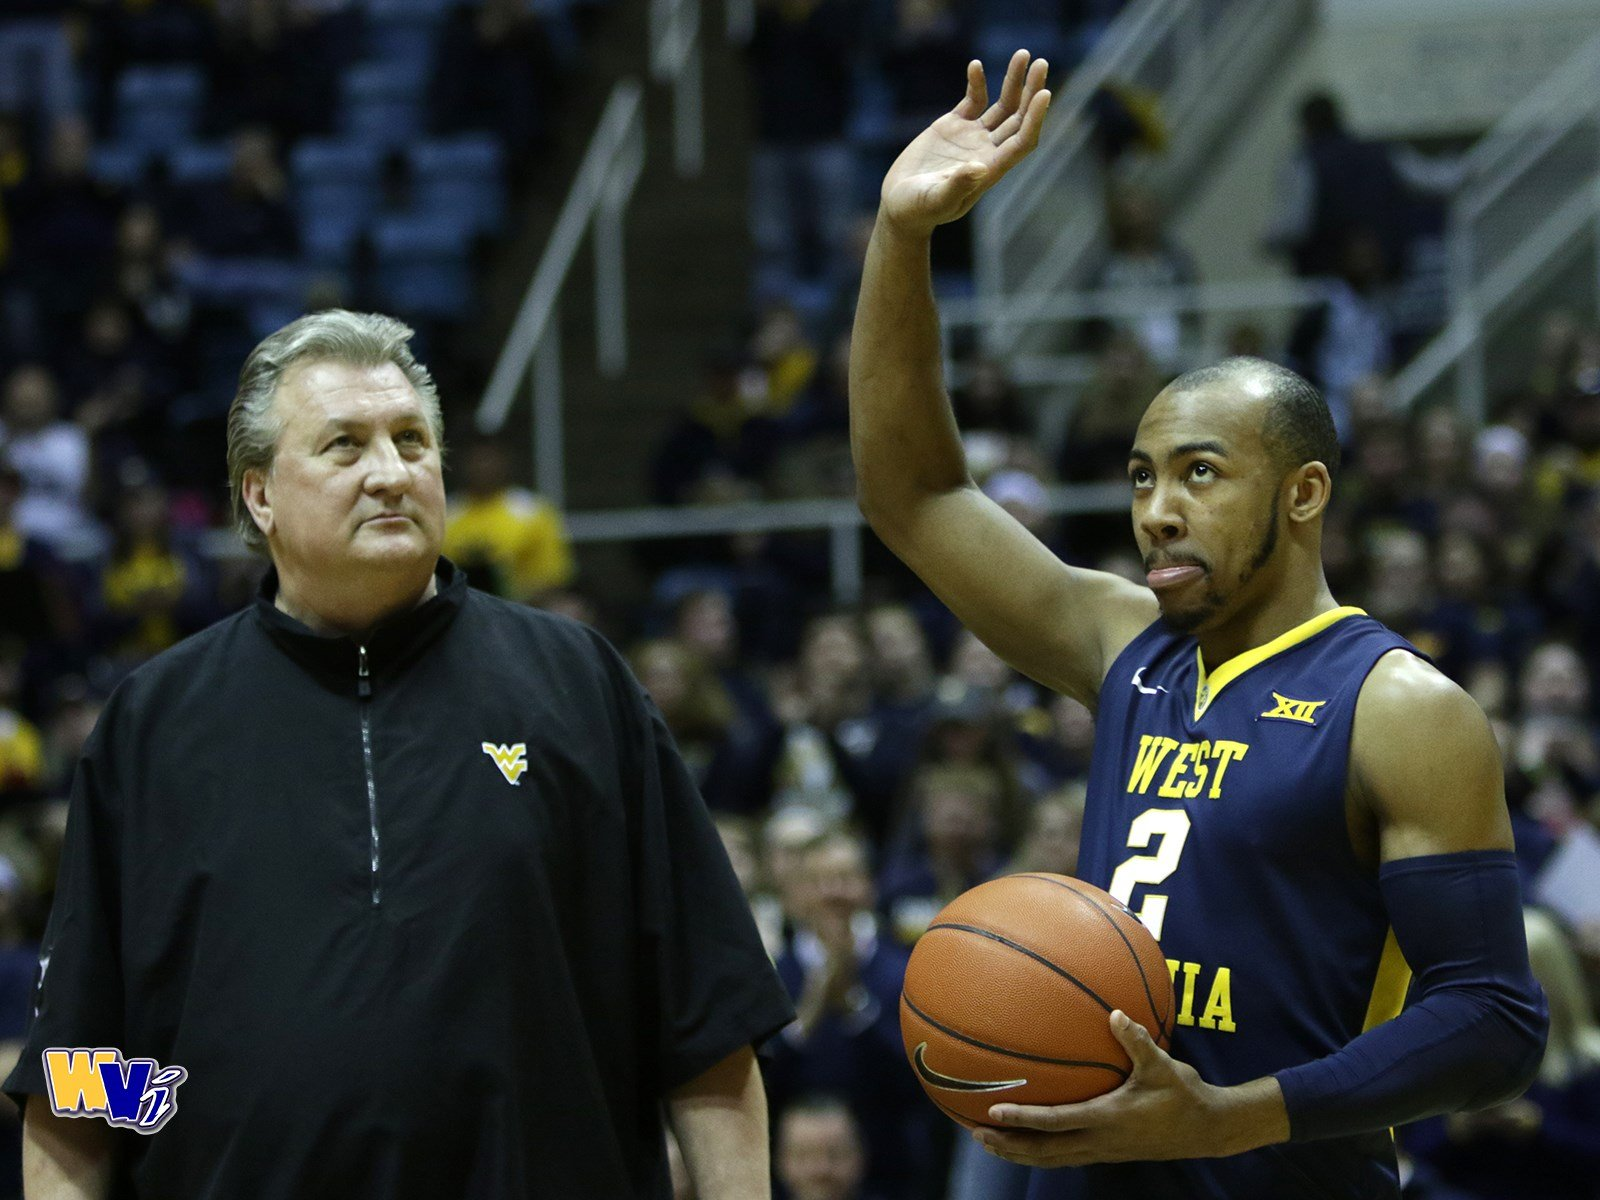 Jevon Carter has been recognized as the Big 12 Defensive Player of the Year.